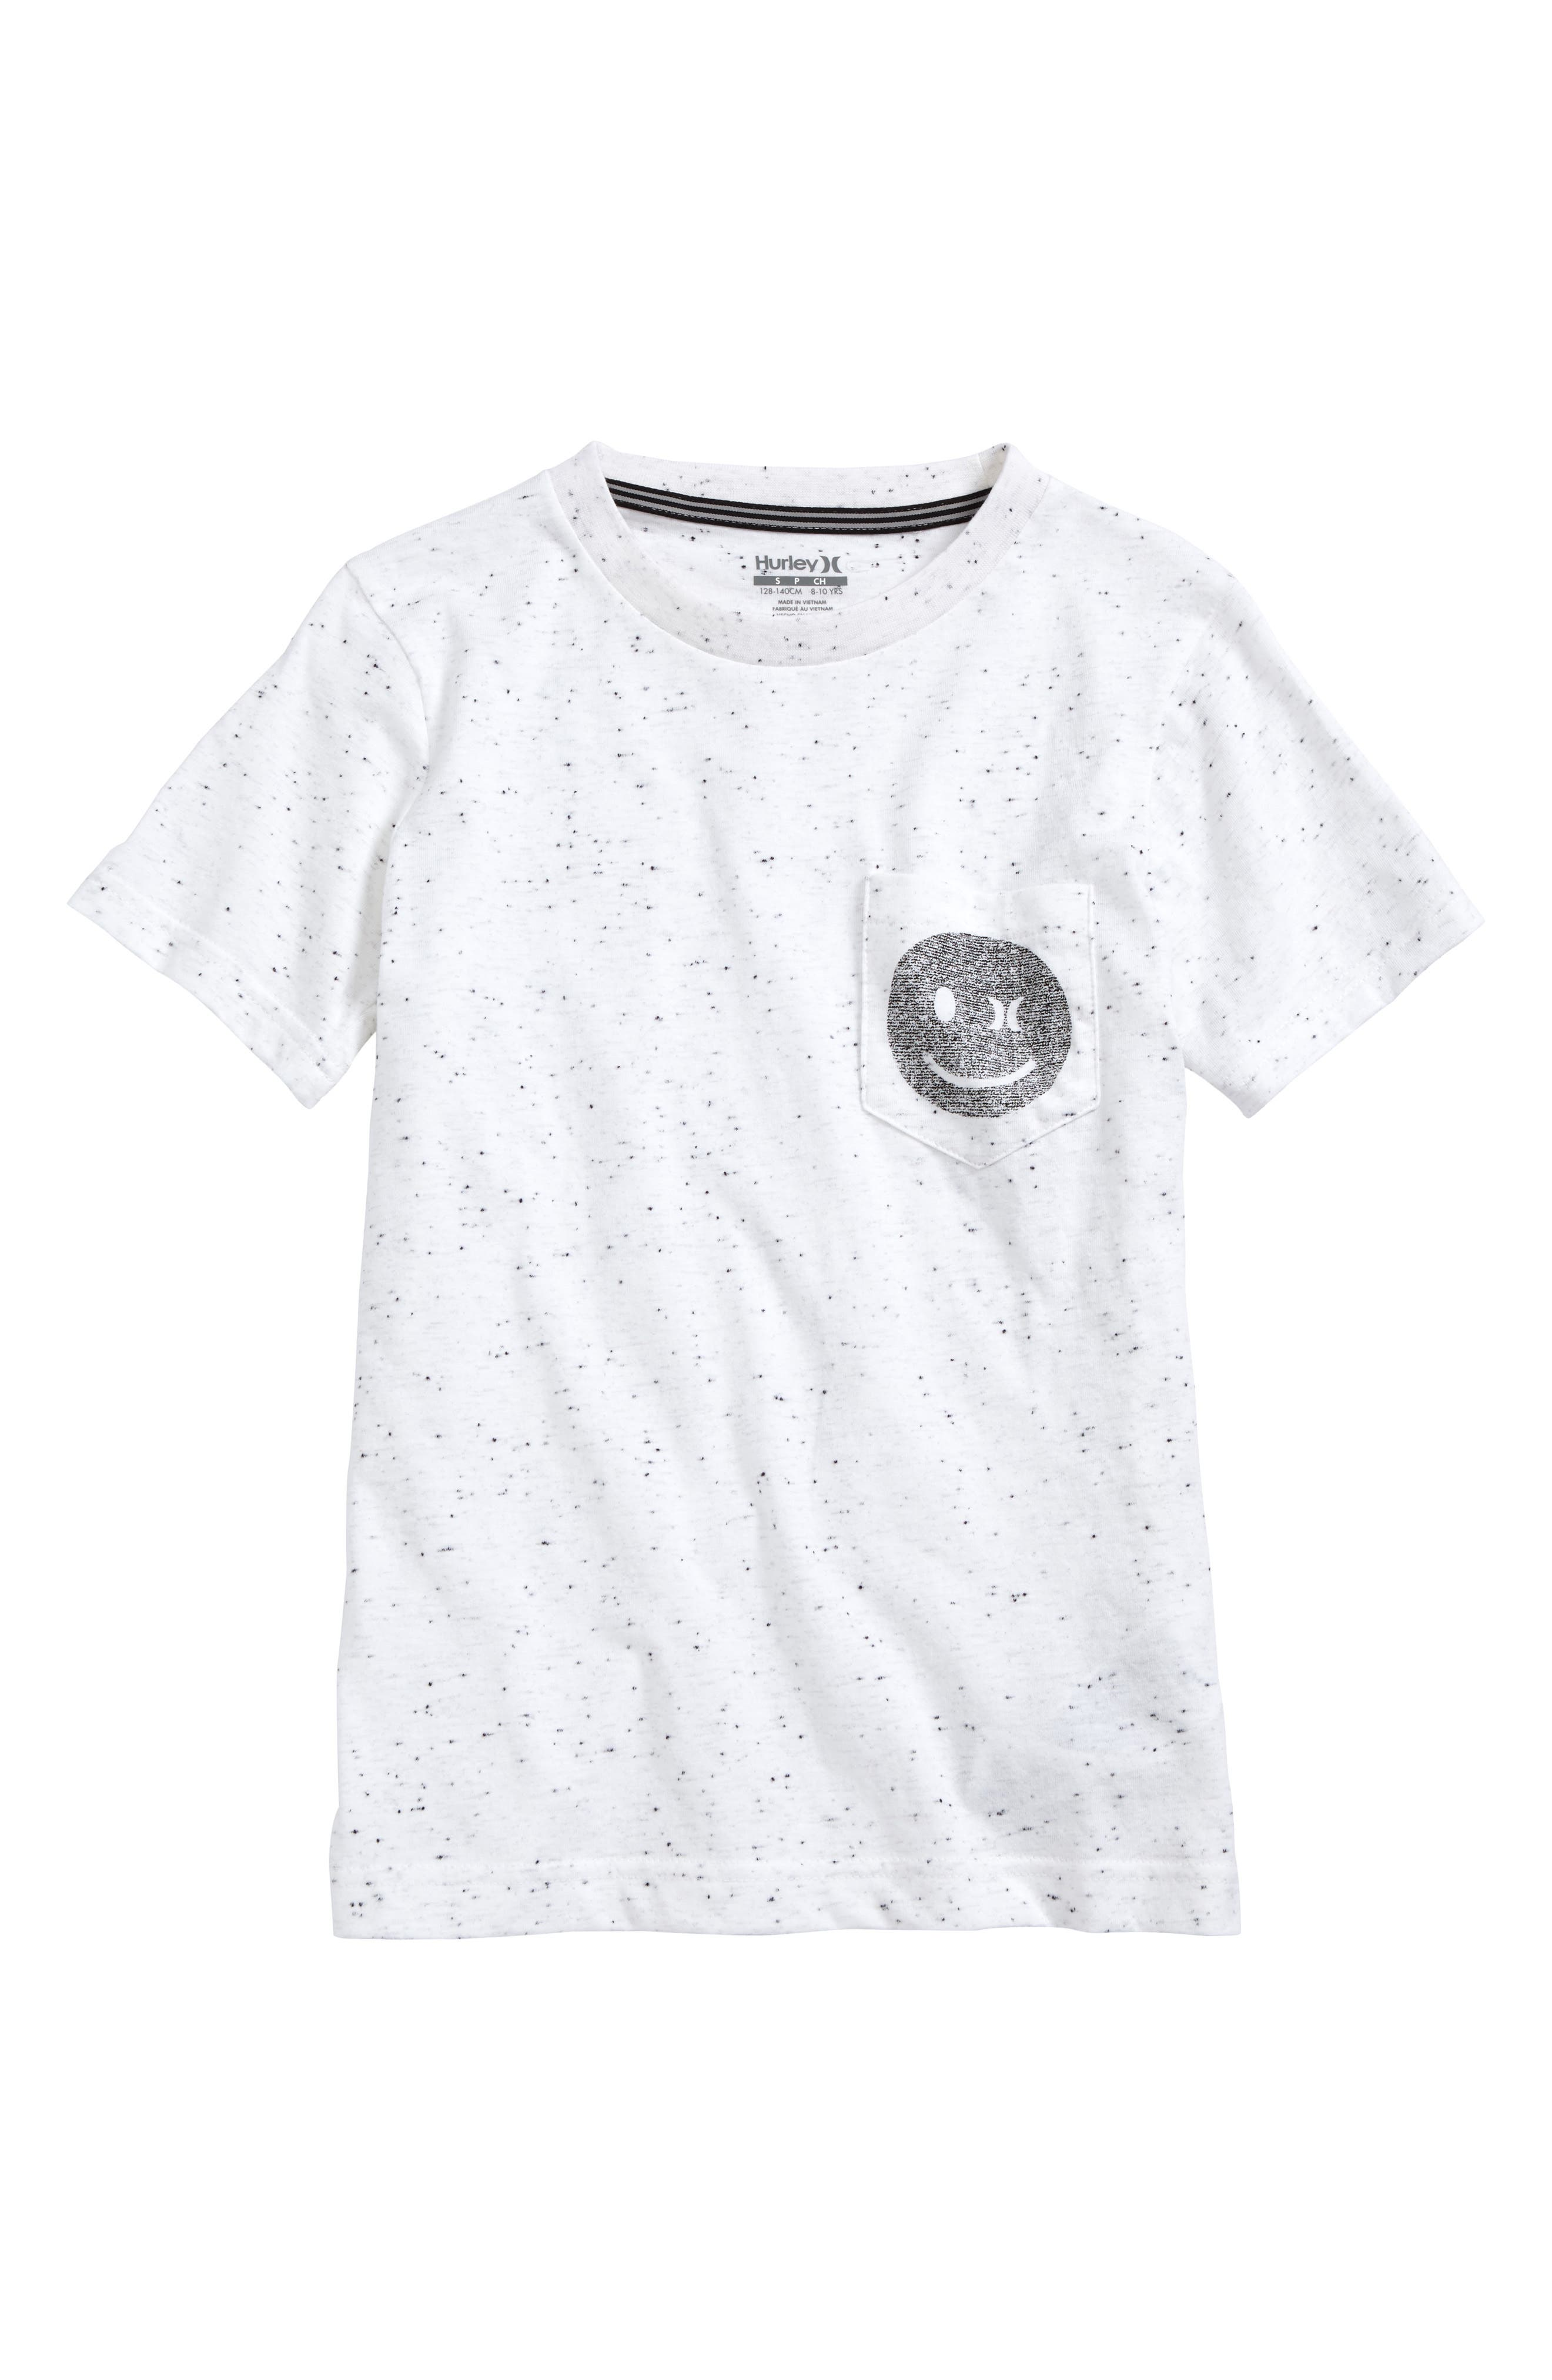 Say What Graphic Pocket T-Shirt,                         Main,                         color, 100